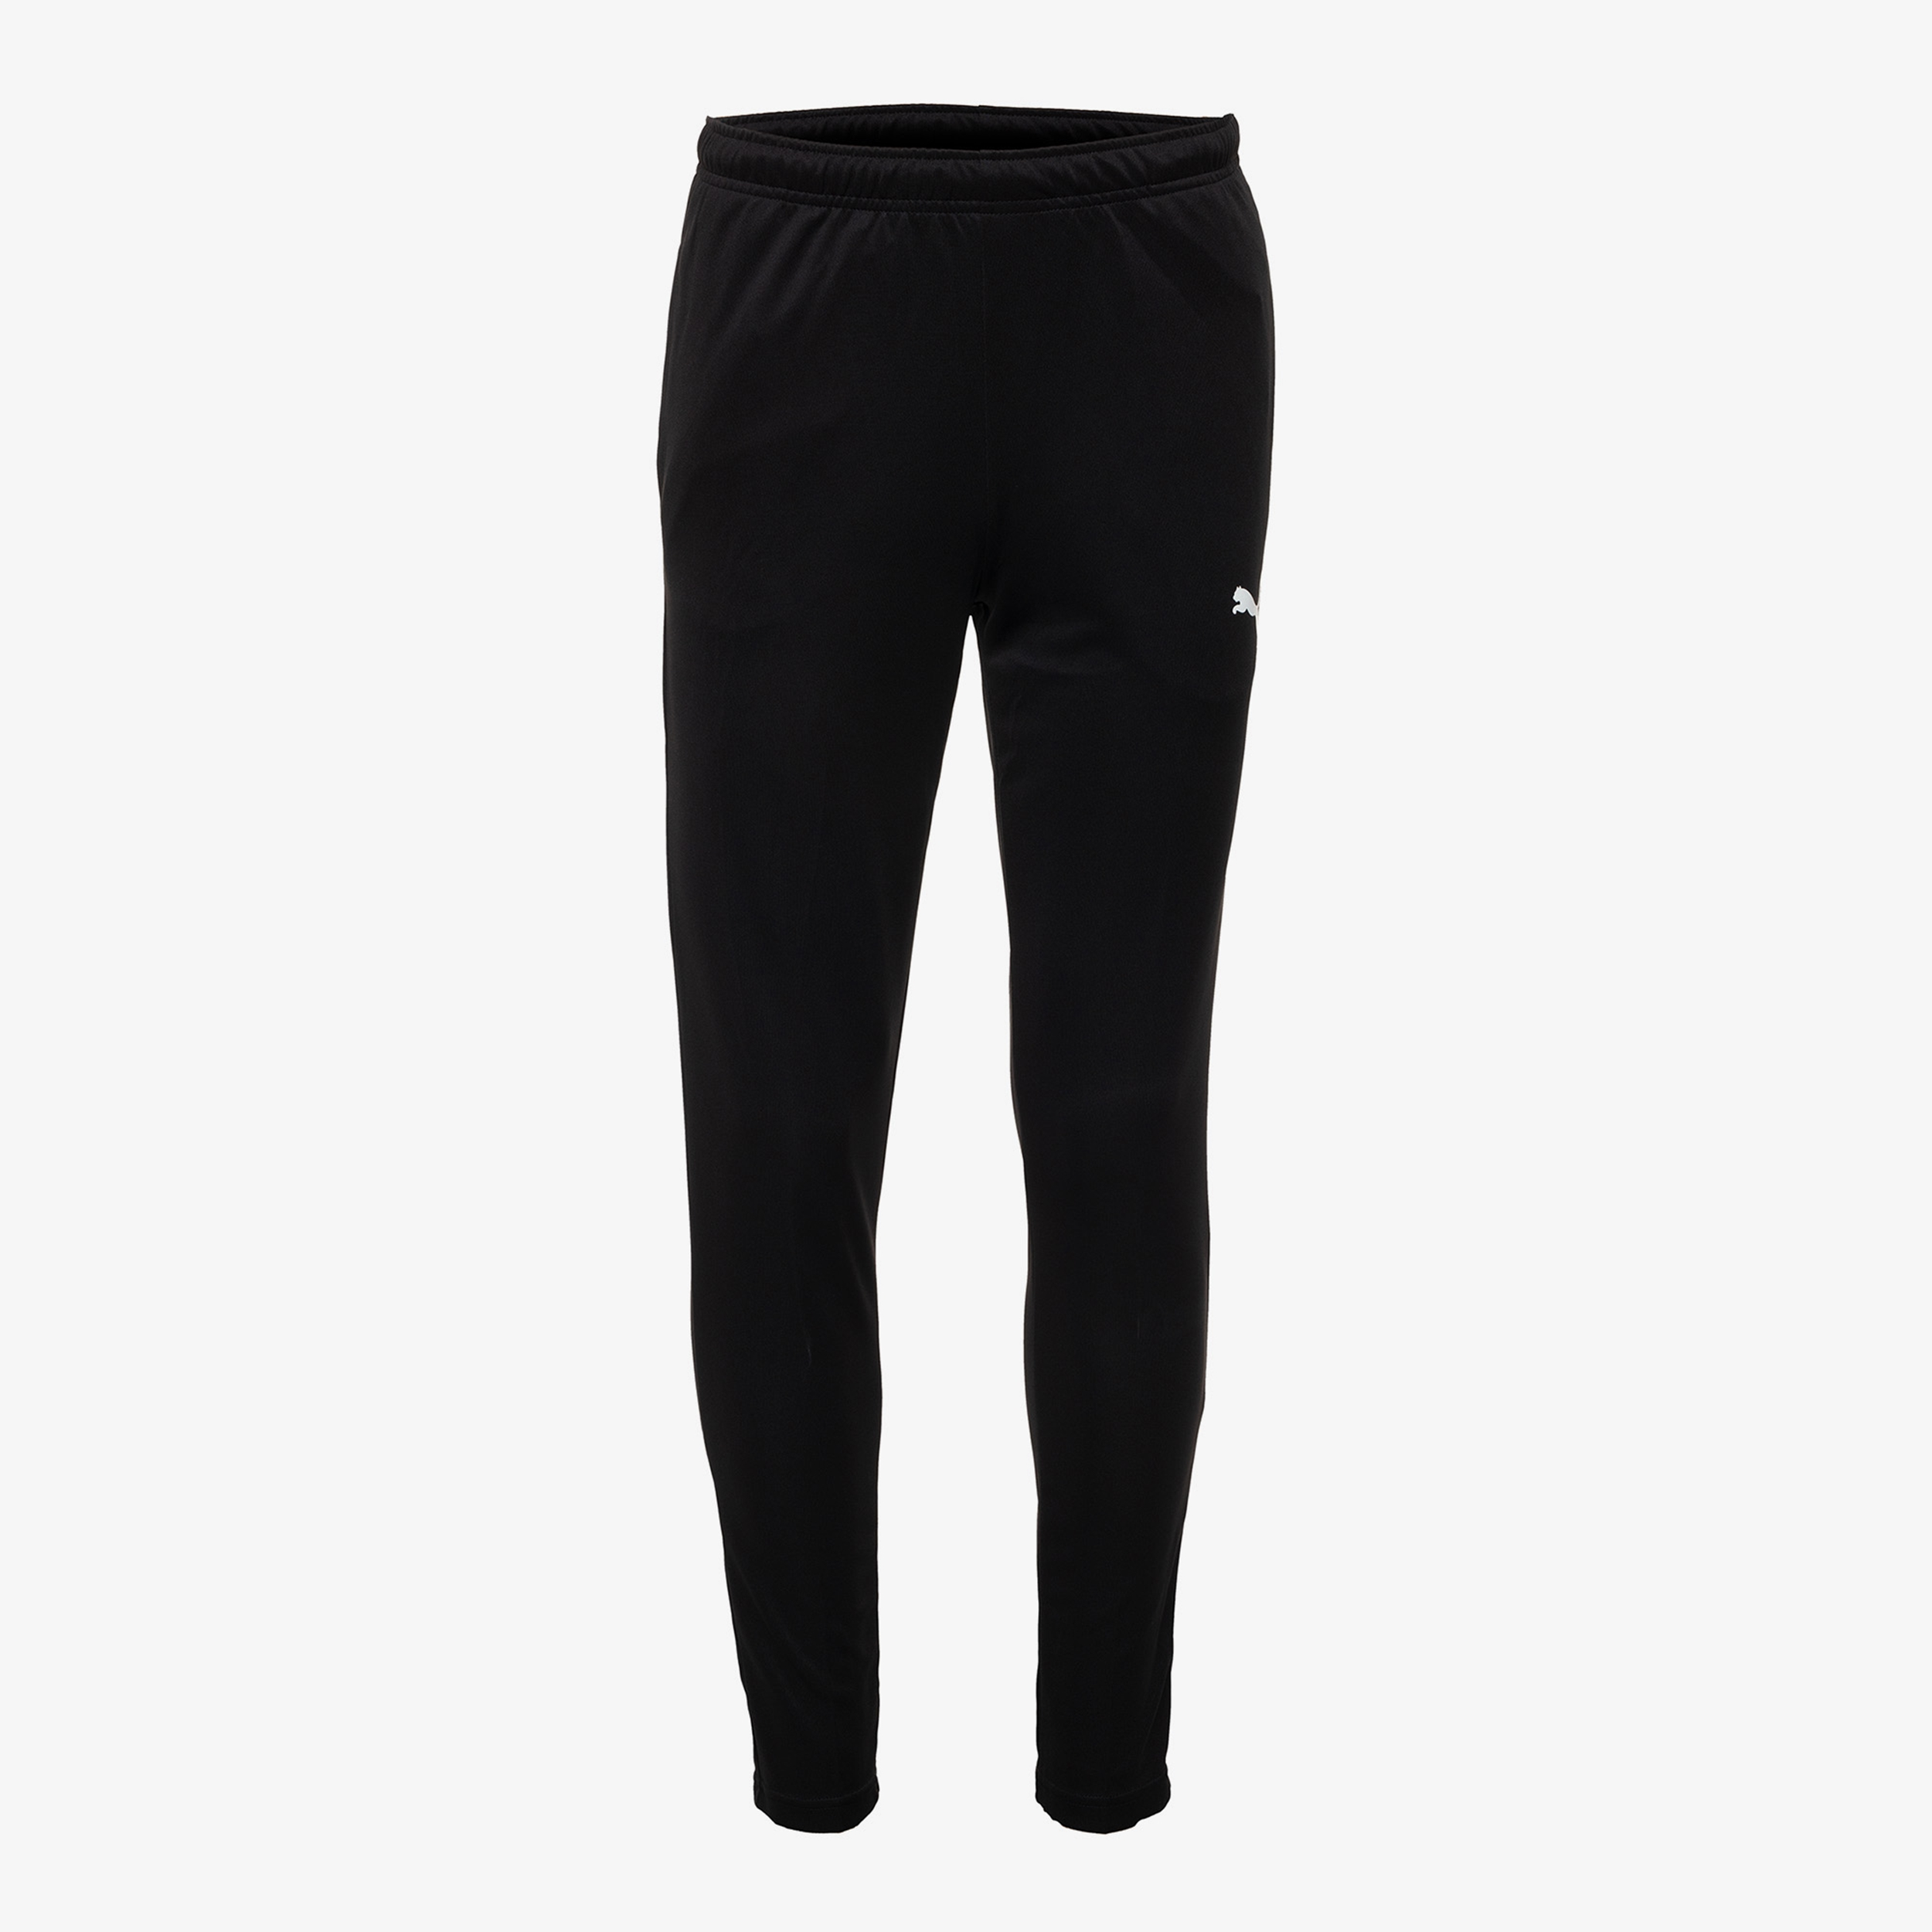 Puma FTBL Play heren trainingsbroek | Scapino.nl